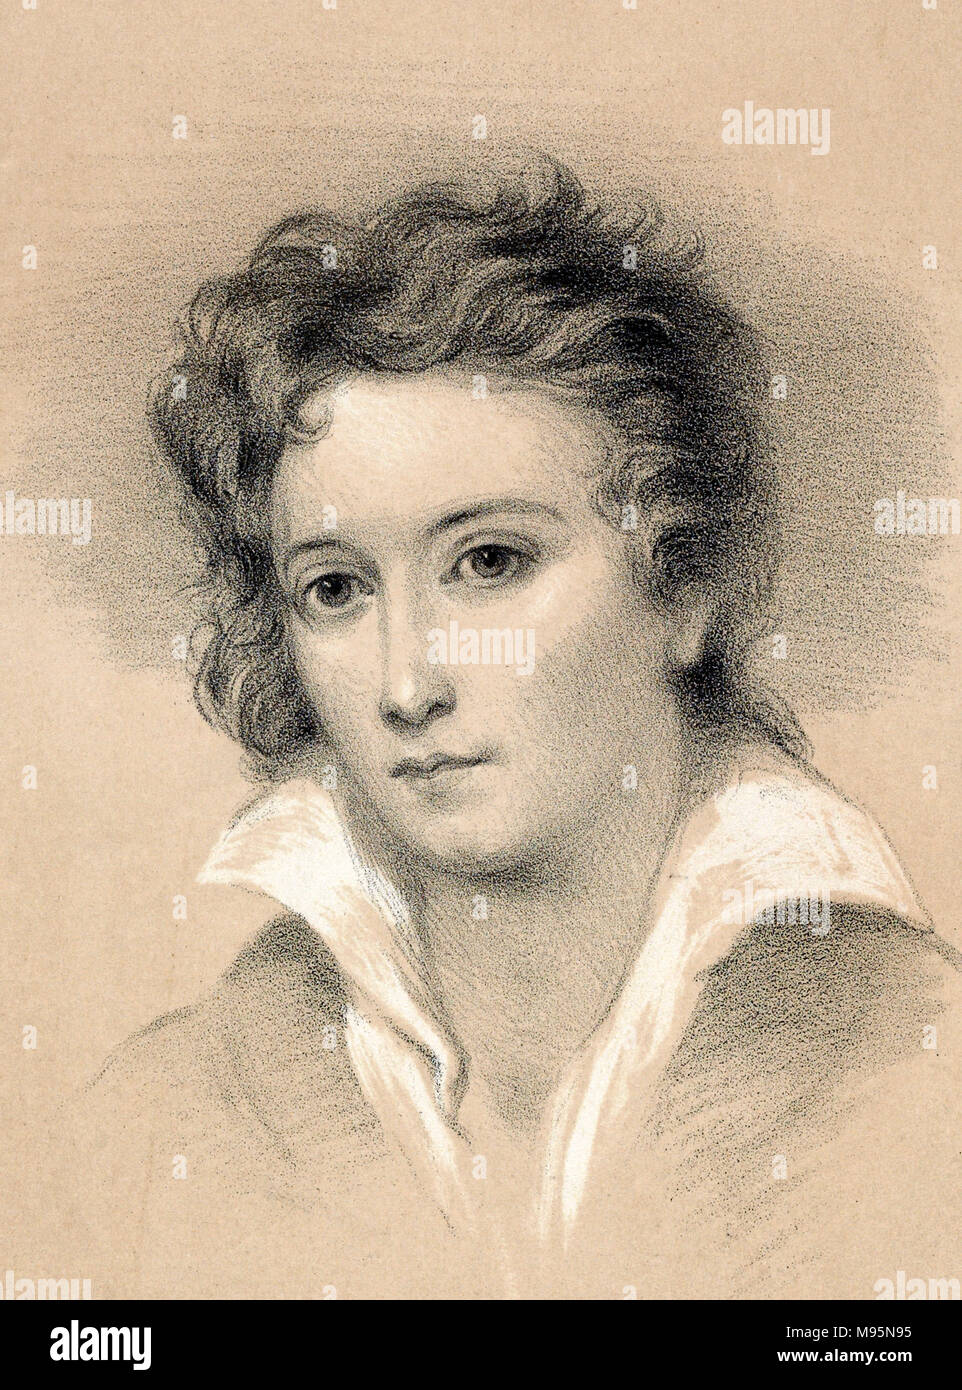 Percy Shelley. Portrait of the English romantic poet, Percy Bysshe Shelley (1792-1822), lithograph by John Alfred Vintner from the original picture by George Clint. - Stock Image